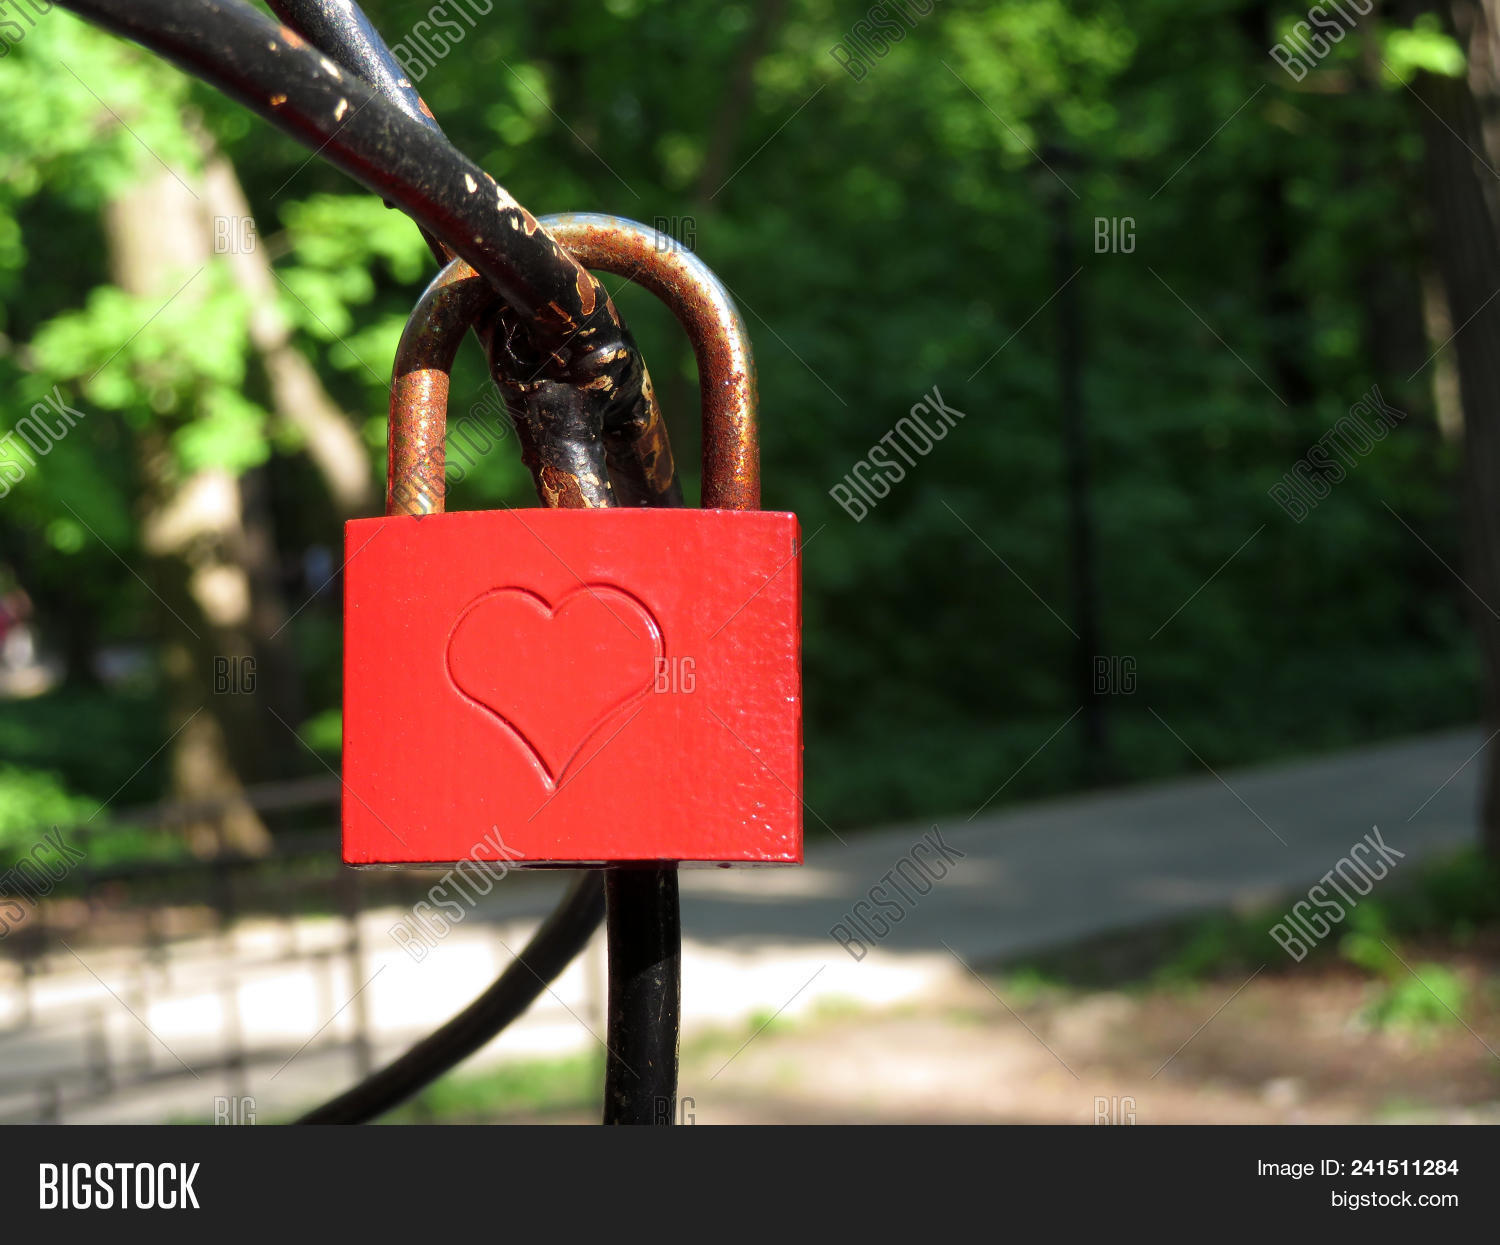 Red Padlock Love Heart Image Photo Free Trial Bigstock